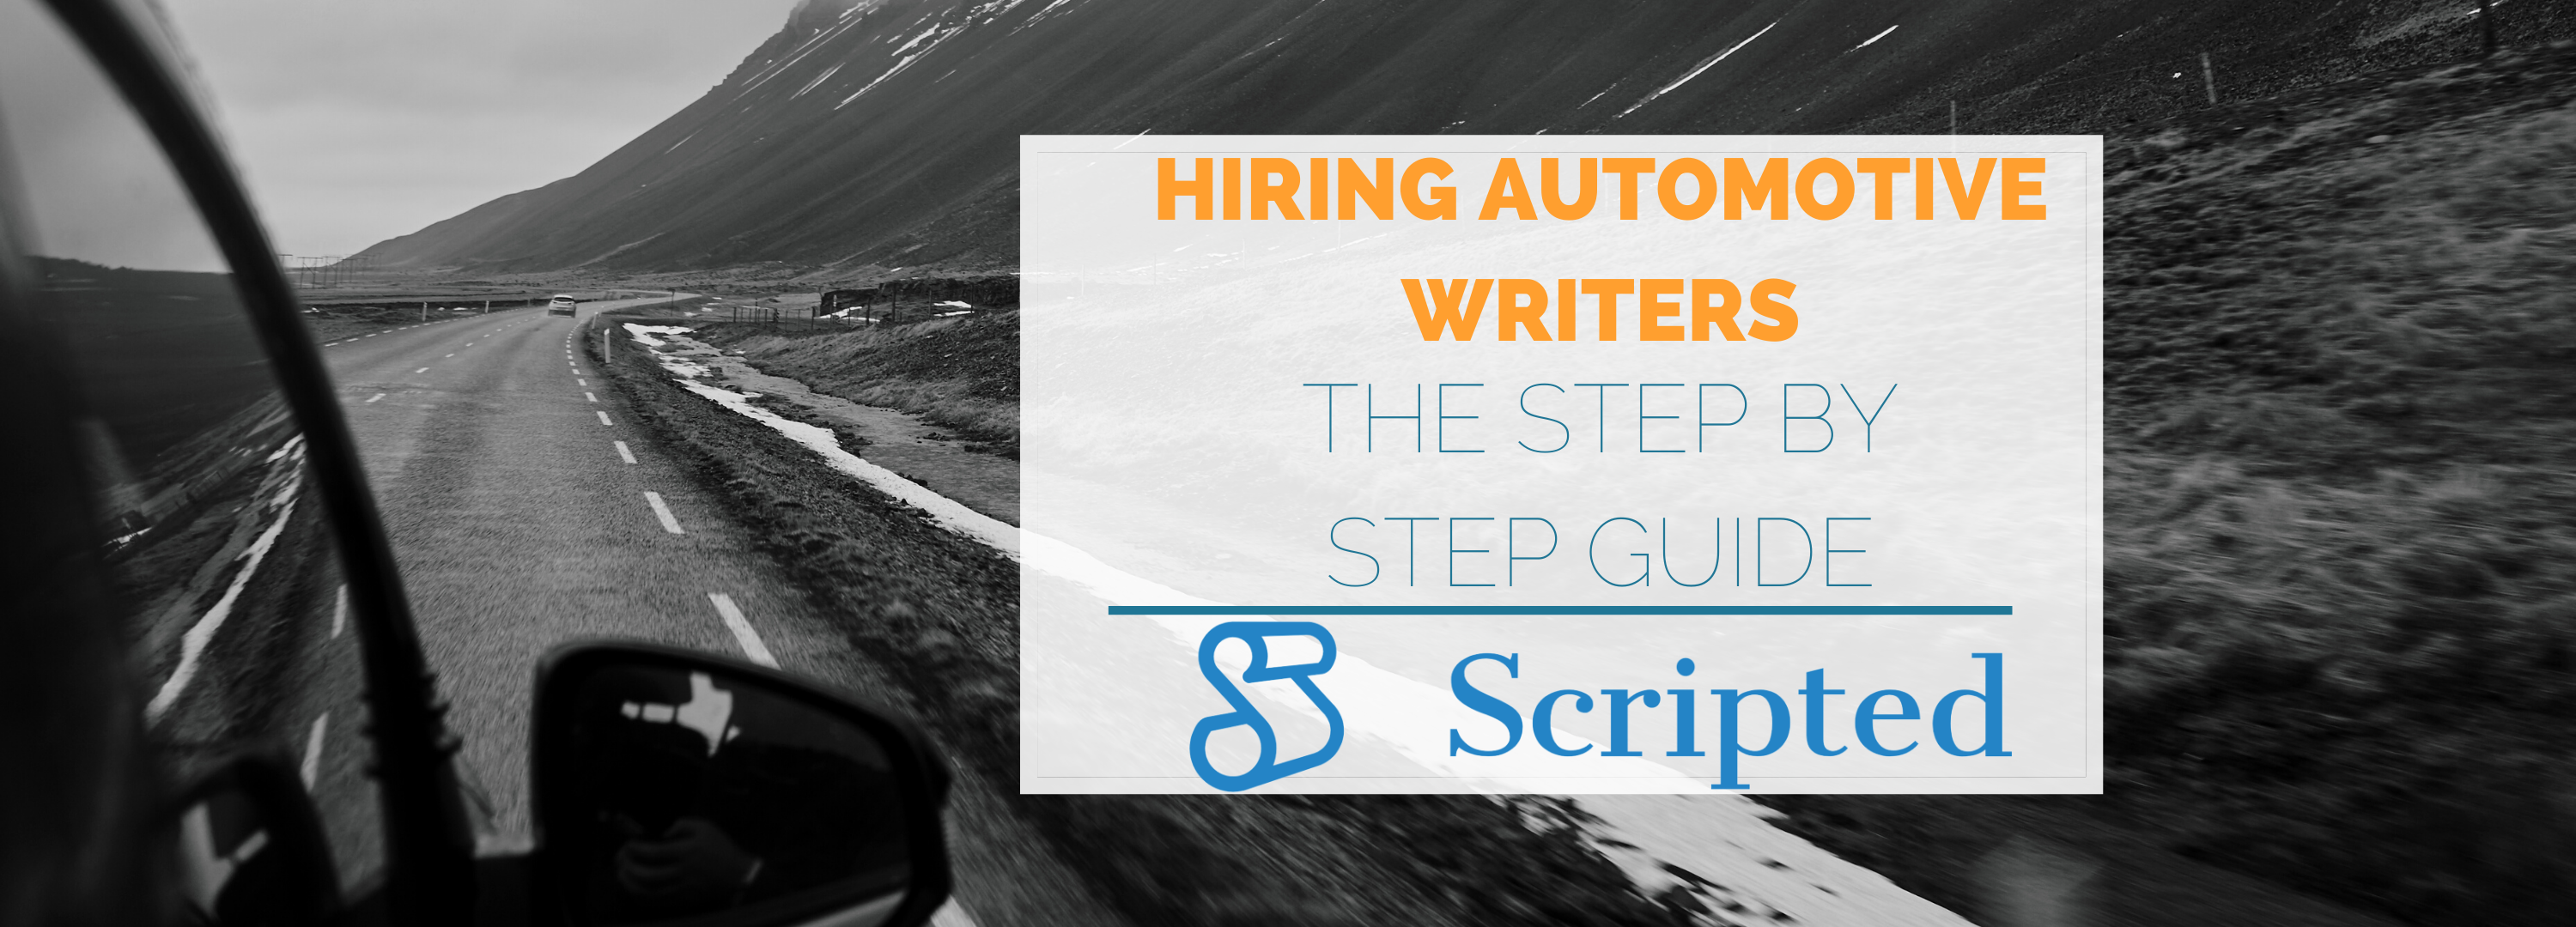 Hiring an Automotive Writer: The Step-by-Step Guide